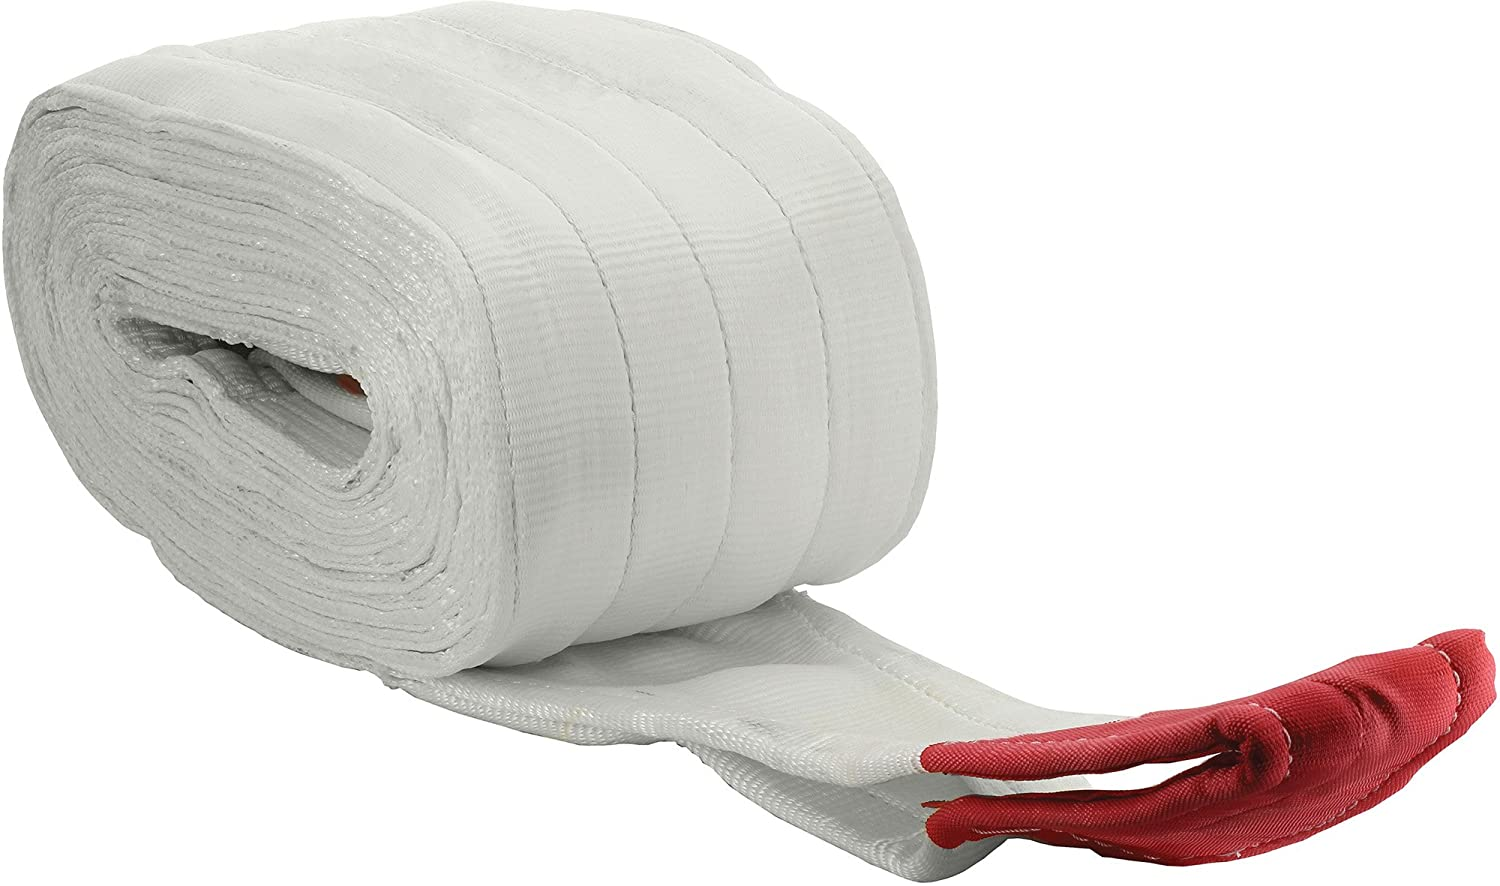 8 inches X 30 Feet RECOVERY STRAP 100 000 LBS BREAKING STRENGTH (1) Prograde